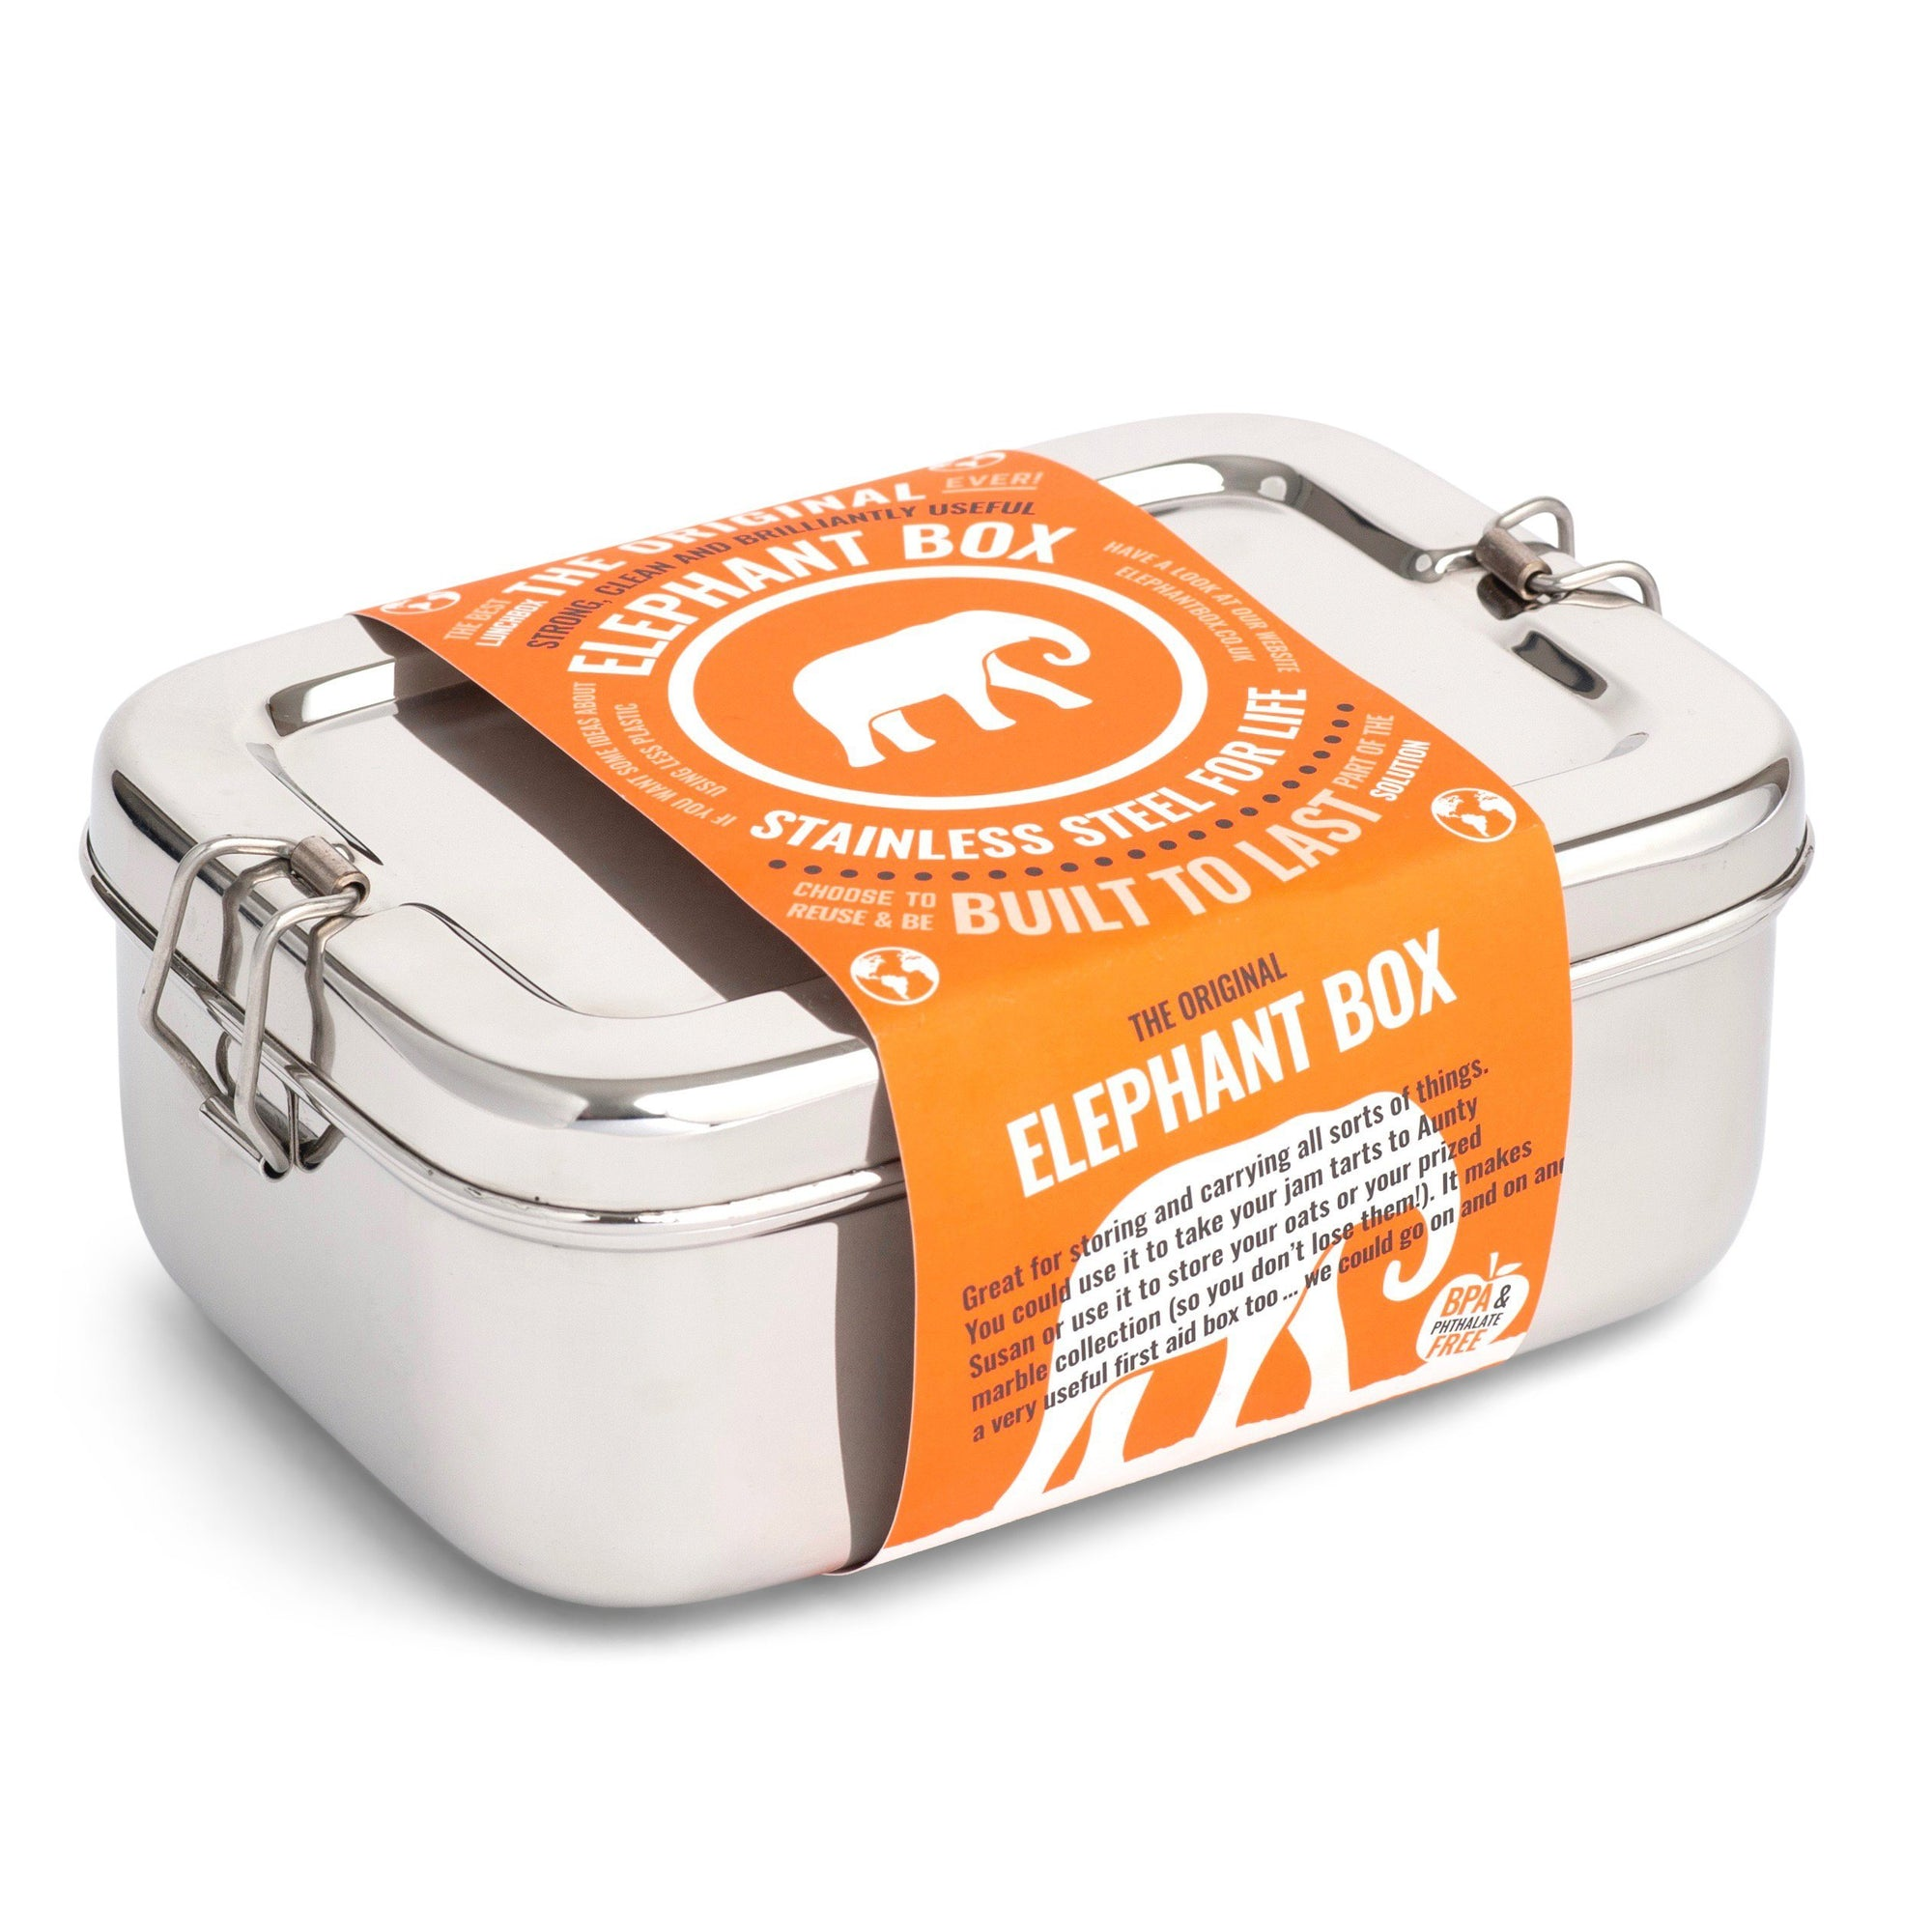 Elephant Box Lunch-box Elephant Box